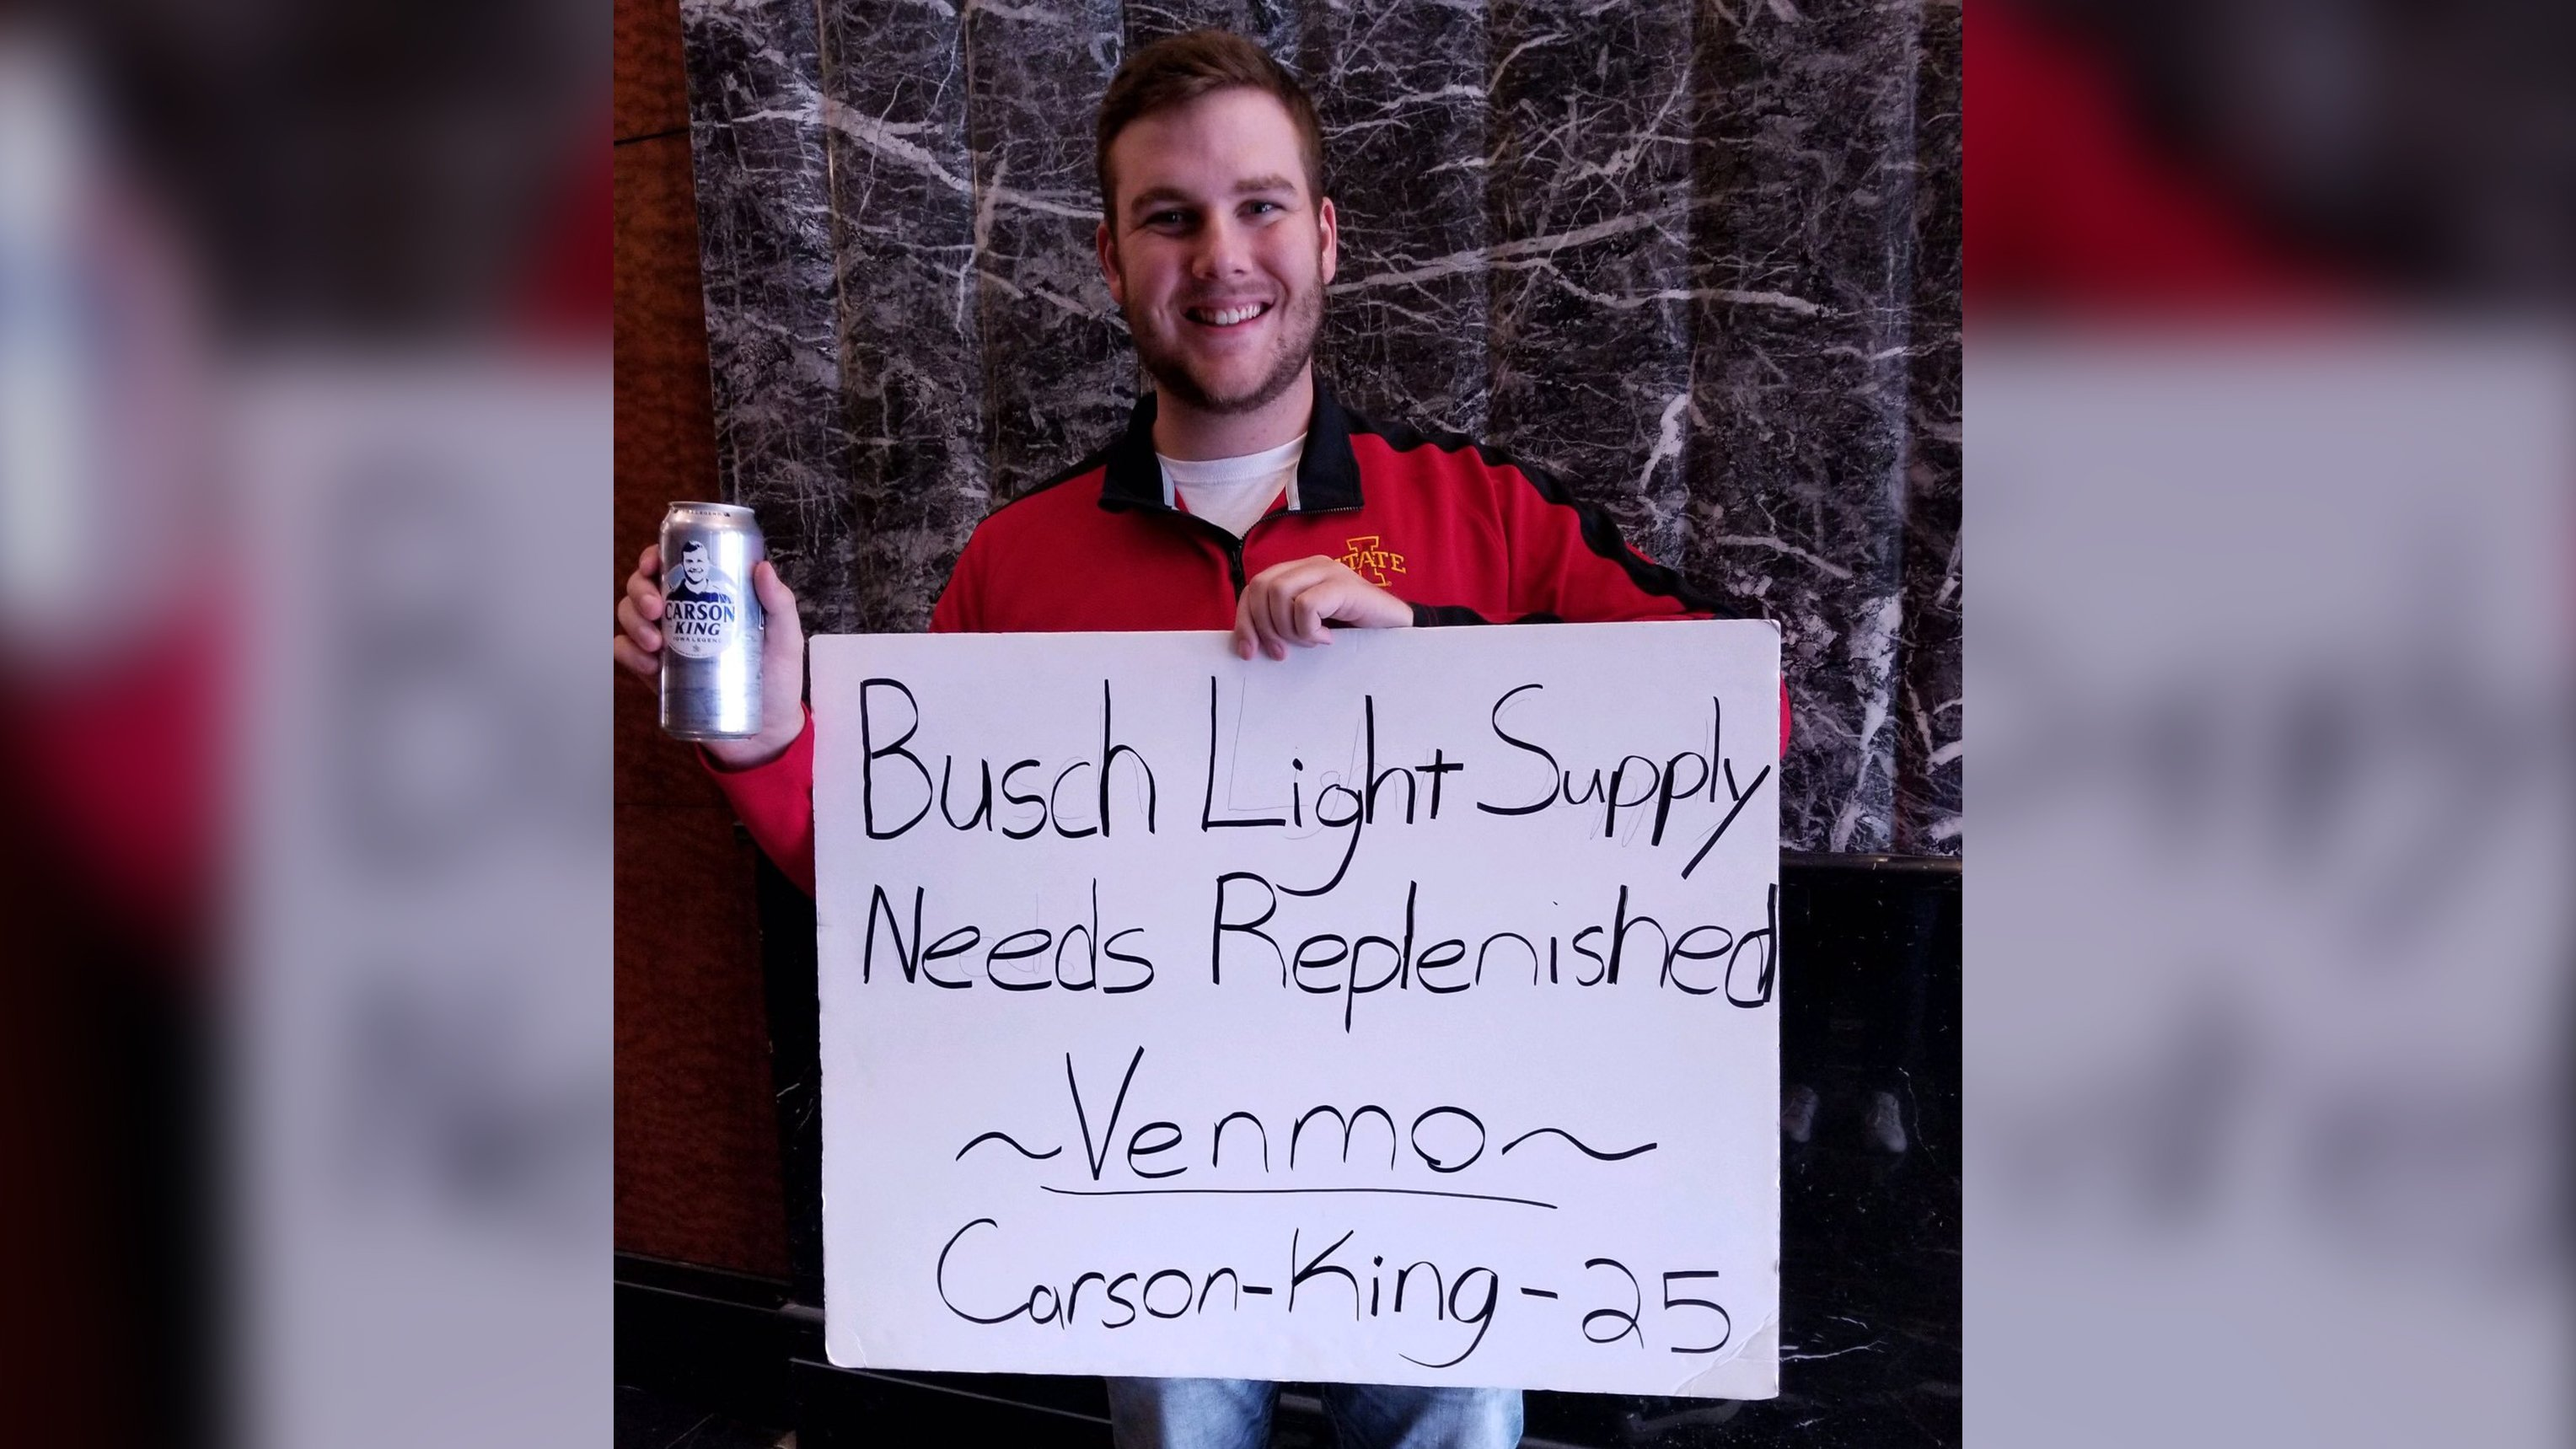 A college football fan's sign asking for beer money raised more than $1 million. He's giving it to charity